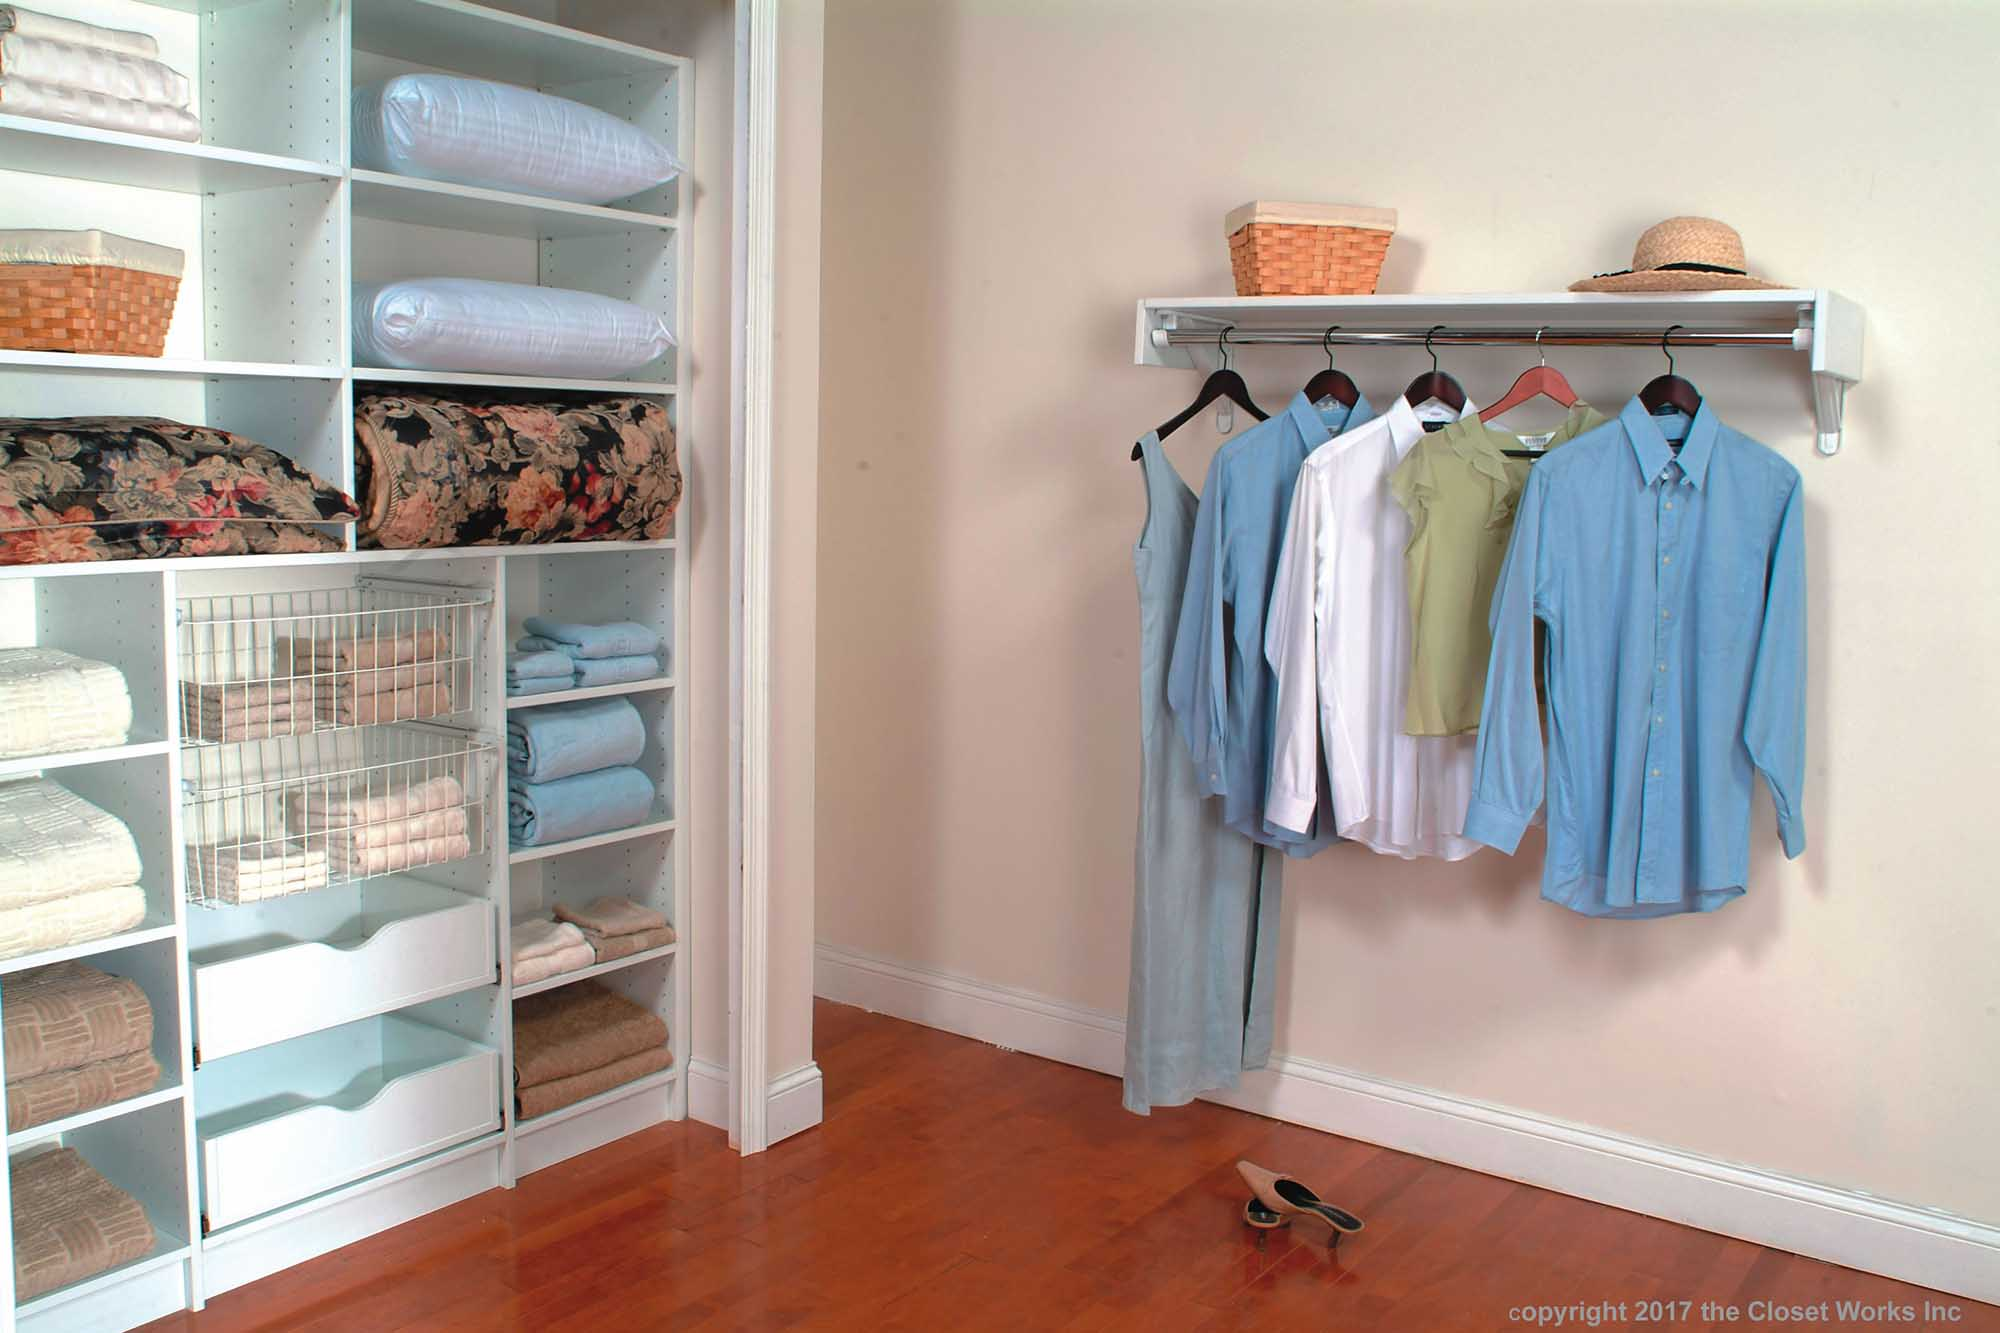 Reach in linen closet with adjacent hanging